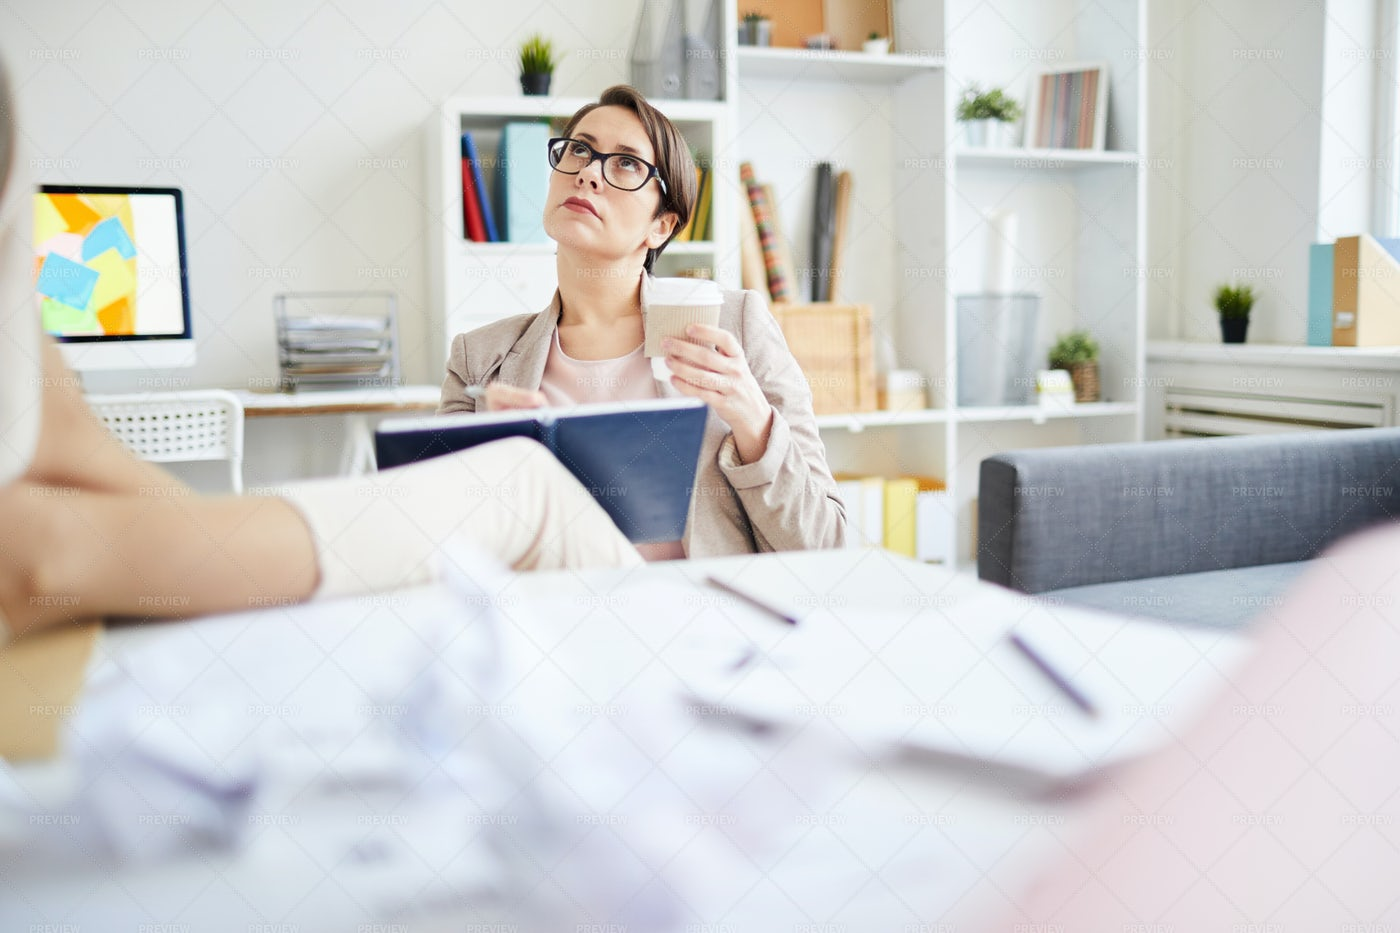 Businesswoman Writing In Journal: Stock Photos